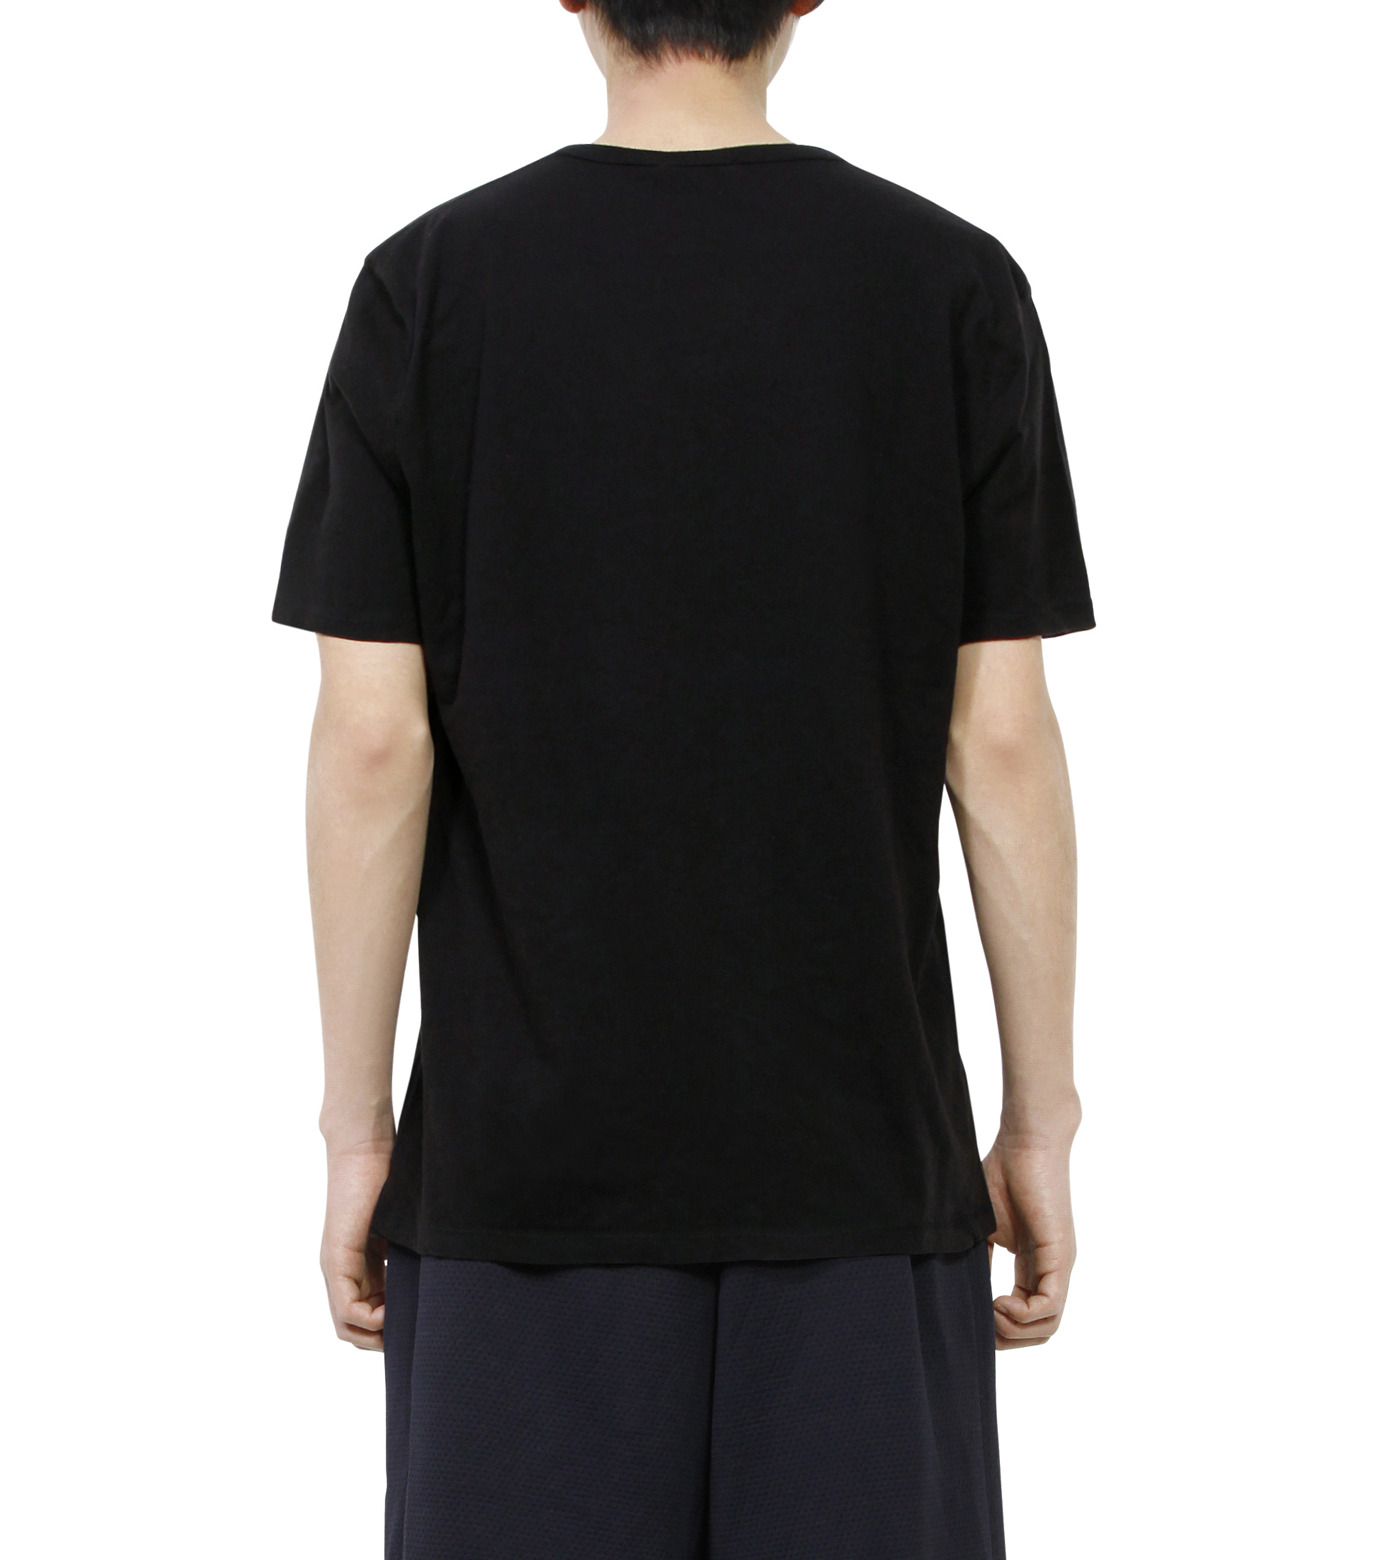 T by Alexander Wang(ティーバイ アレキサンダーワン)のBasic T-BLACK(カットソー/cut and sewn)-500201C-13 拡大詳細画像2